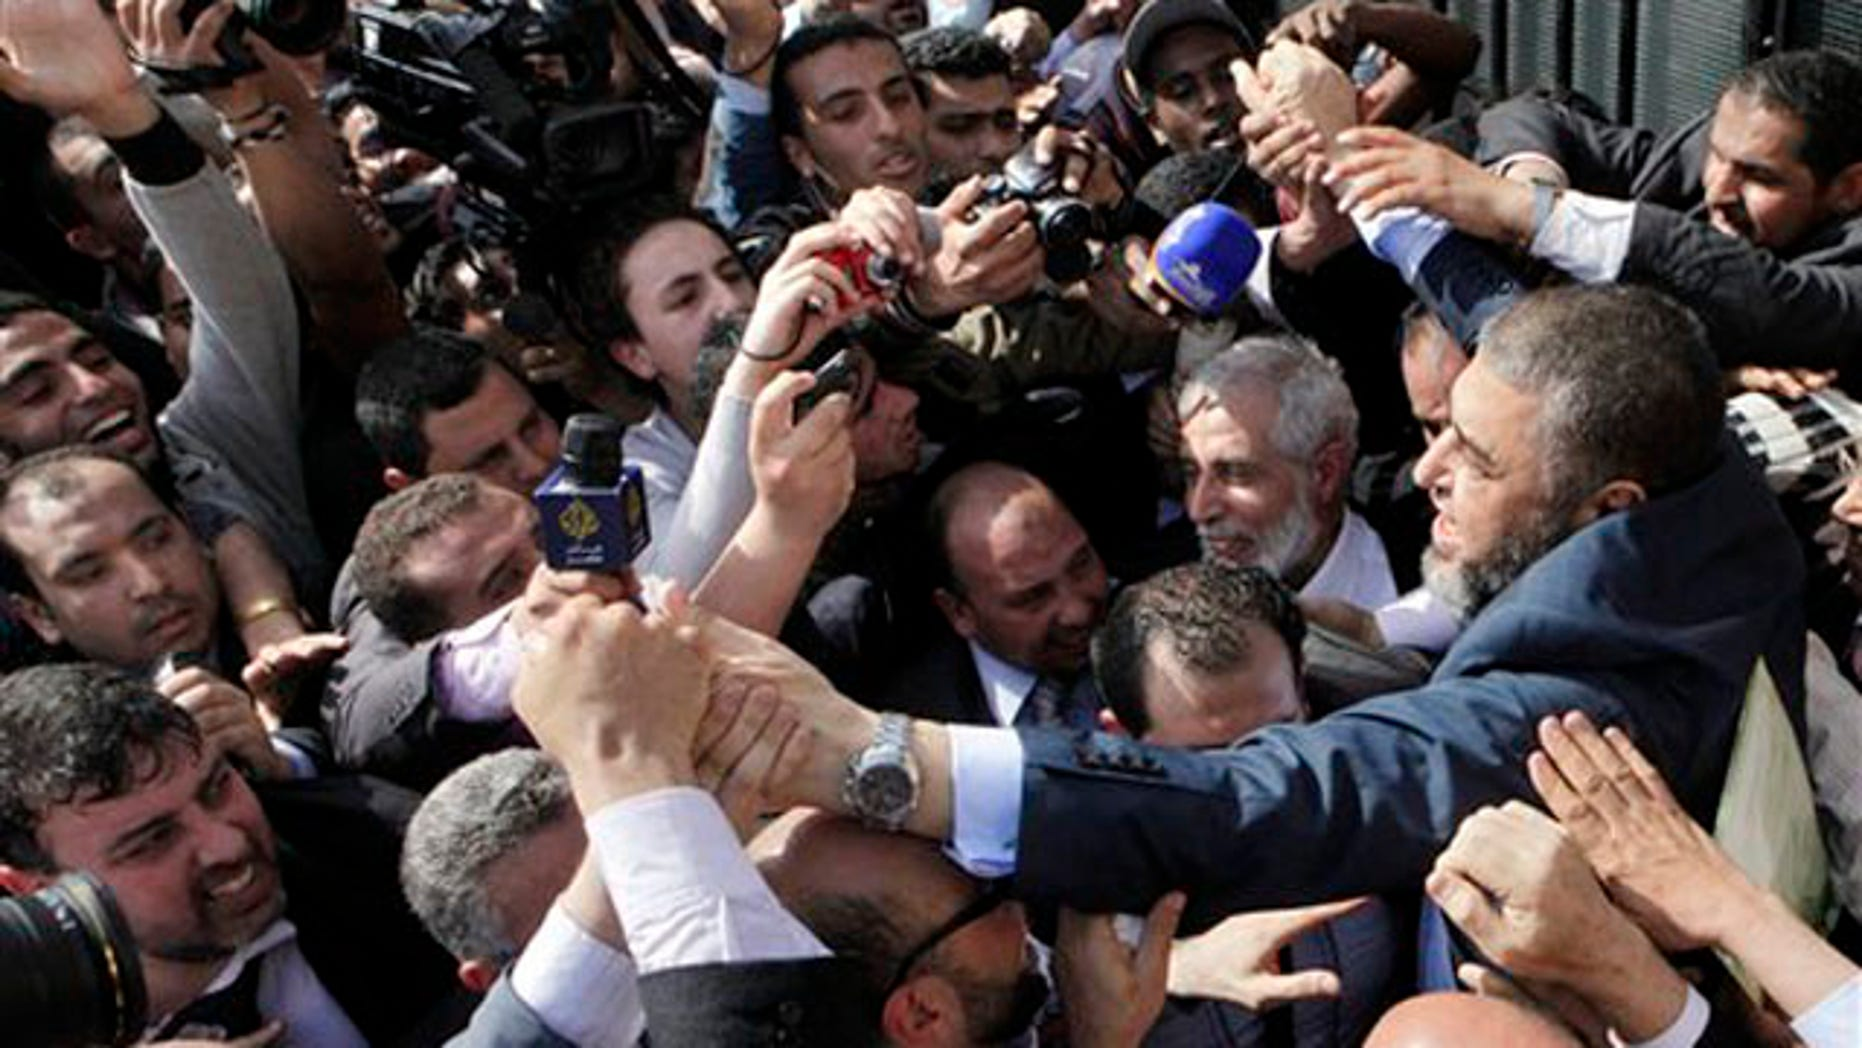 April 5, 2012: Muslim Brotherhood presidential hopeful Khairat el-Shater, right, is surrounded by hundreds of supporters and cameramen in Cairo.